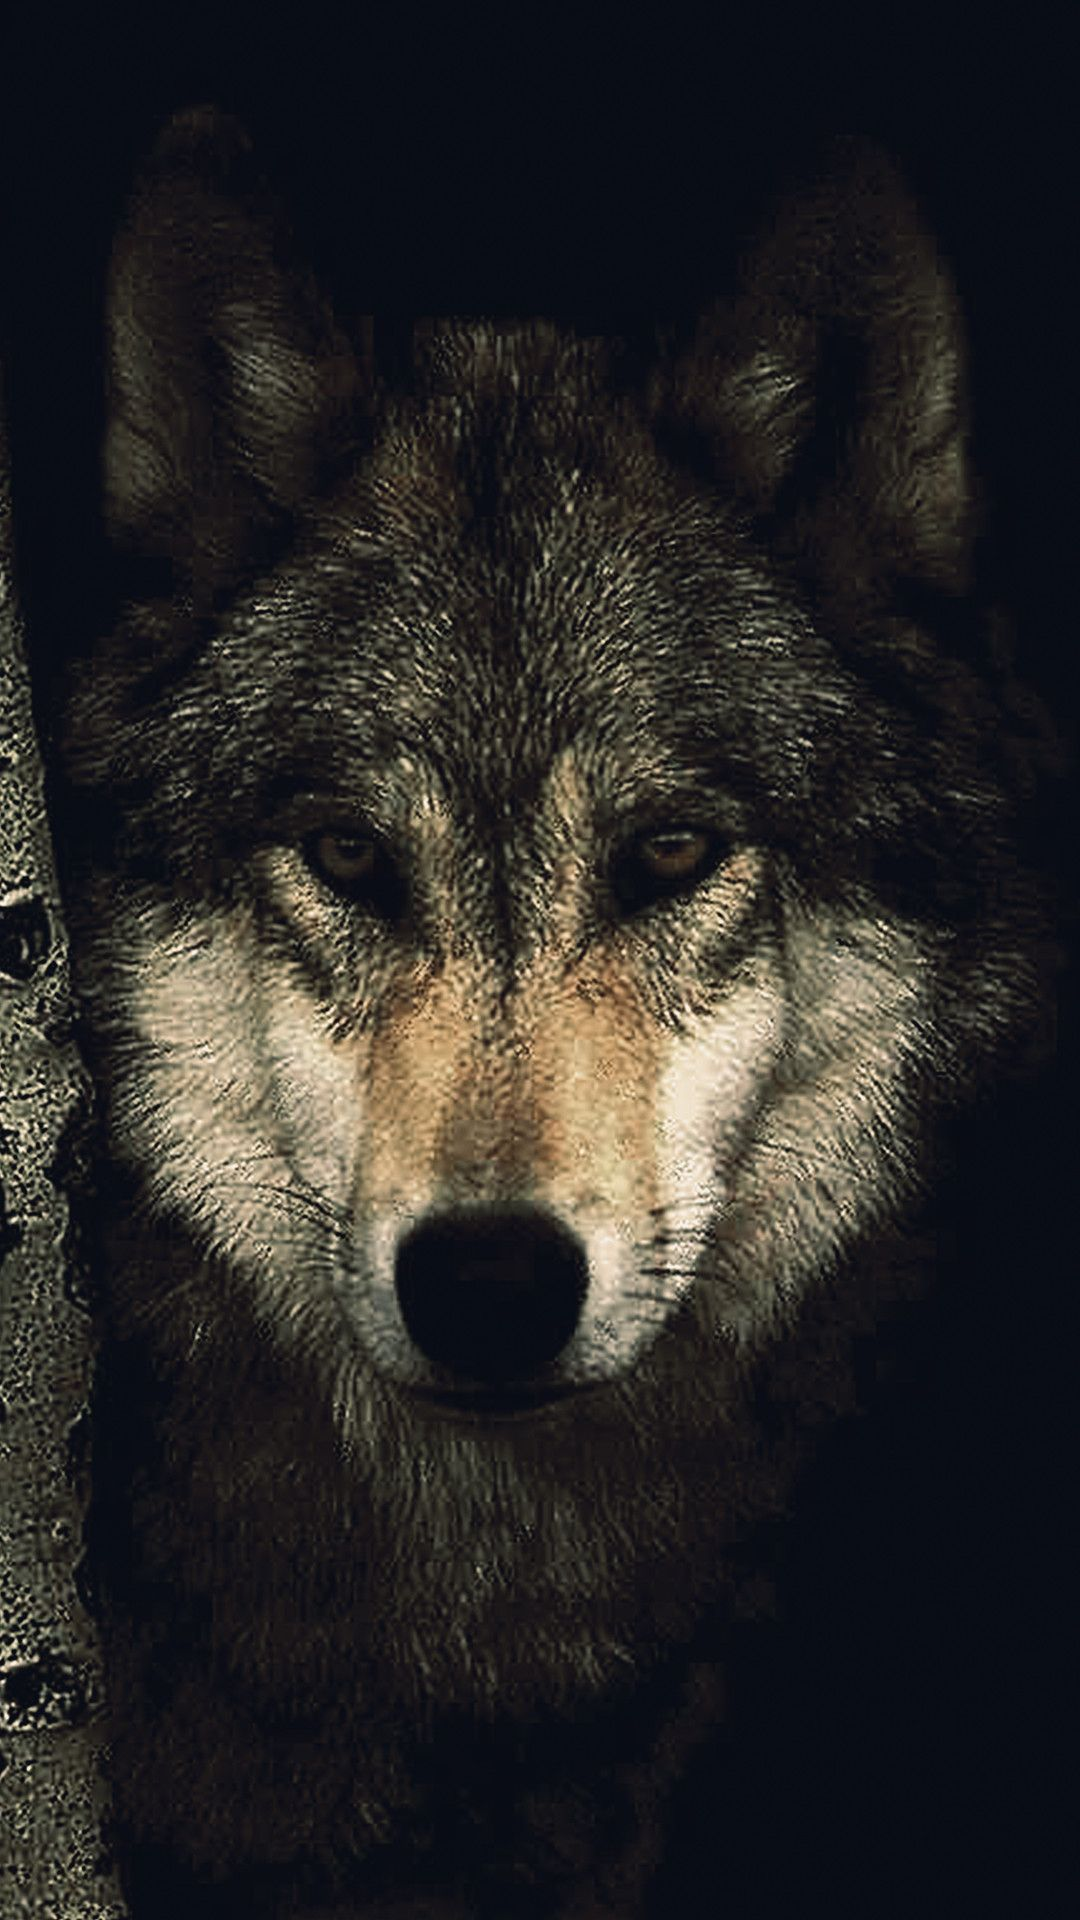 Epic Wolf Wallpaper 1080p For Iphone Wallpaper On Hupages Com If You Like It Dont Forget Save It Or Repin It Iphone Wallpaper Wolf Wolf Wallpaper Black Wolf